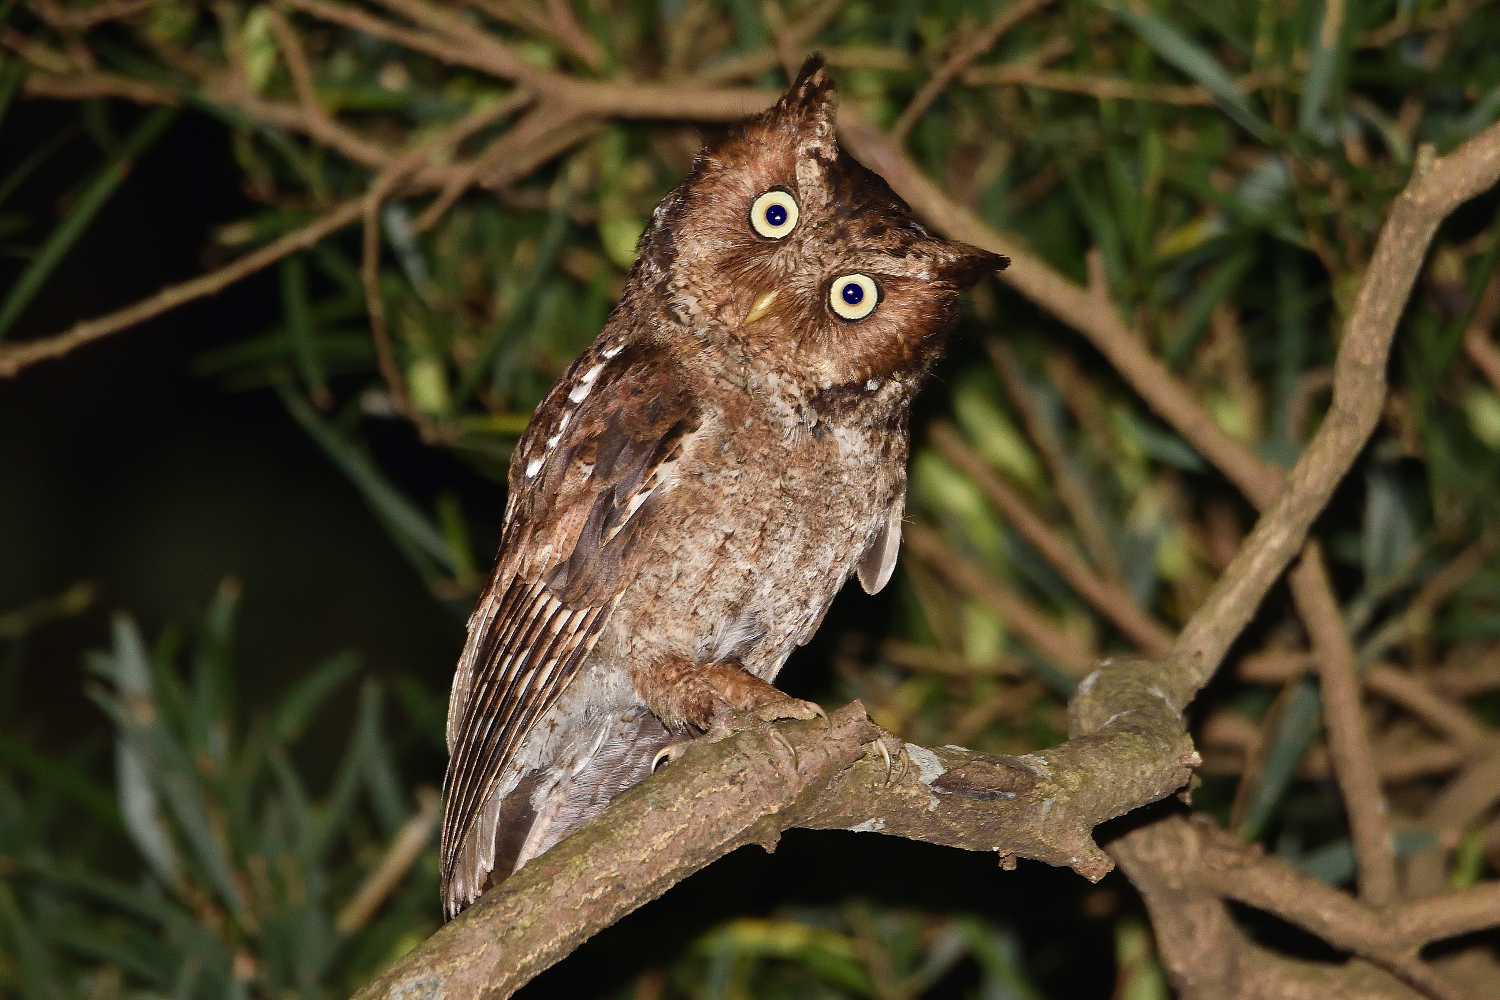 Moutain_Scops_Owl_1467_Redeye